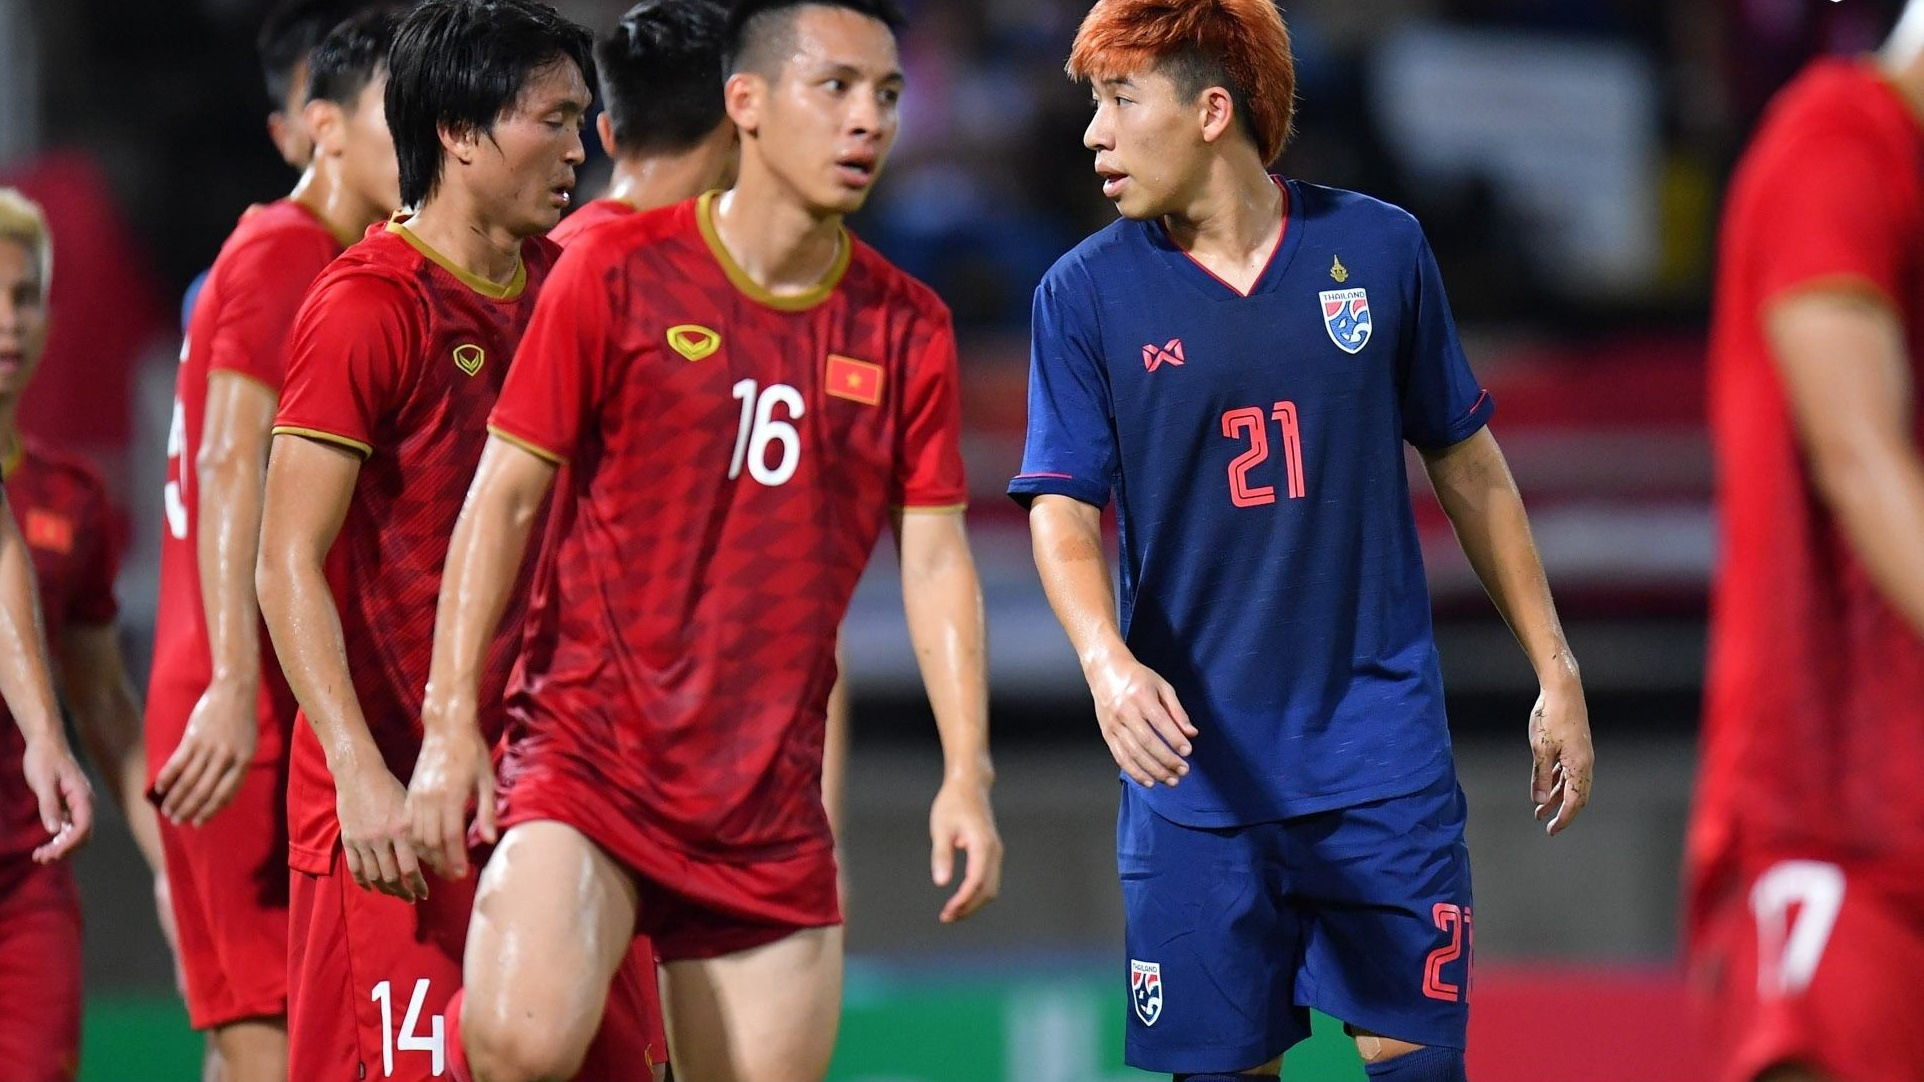 Do Hung Dung Thailand vs Vietnam 2022 FIFA World Cup qualification